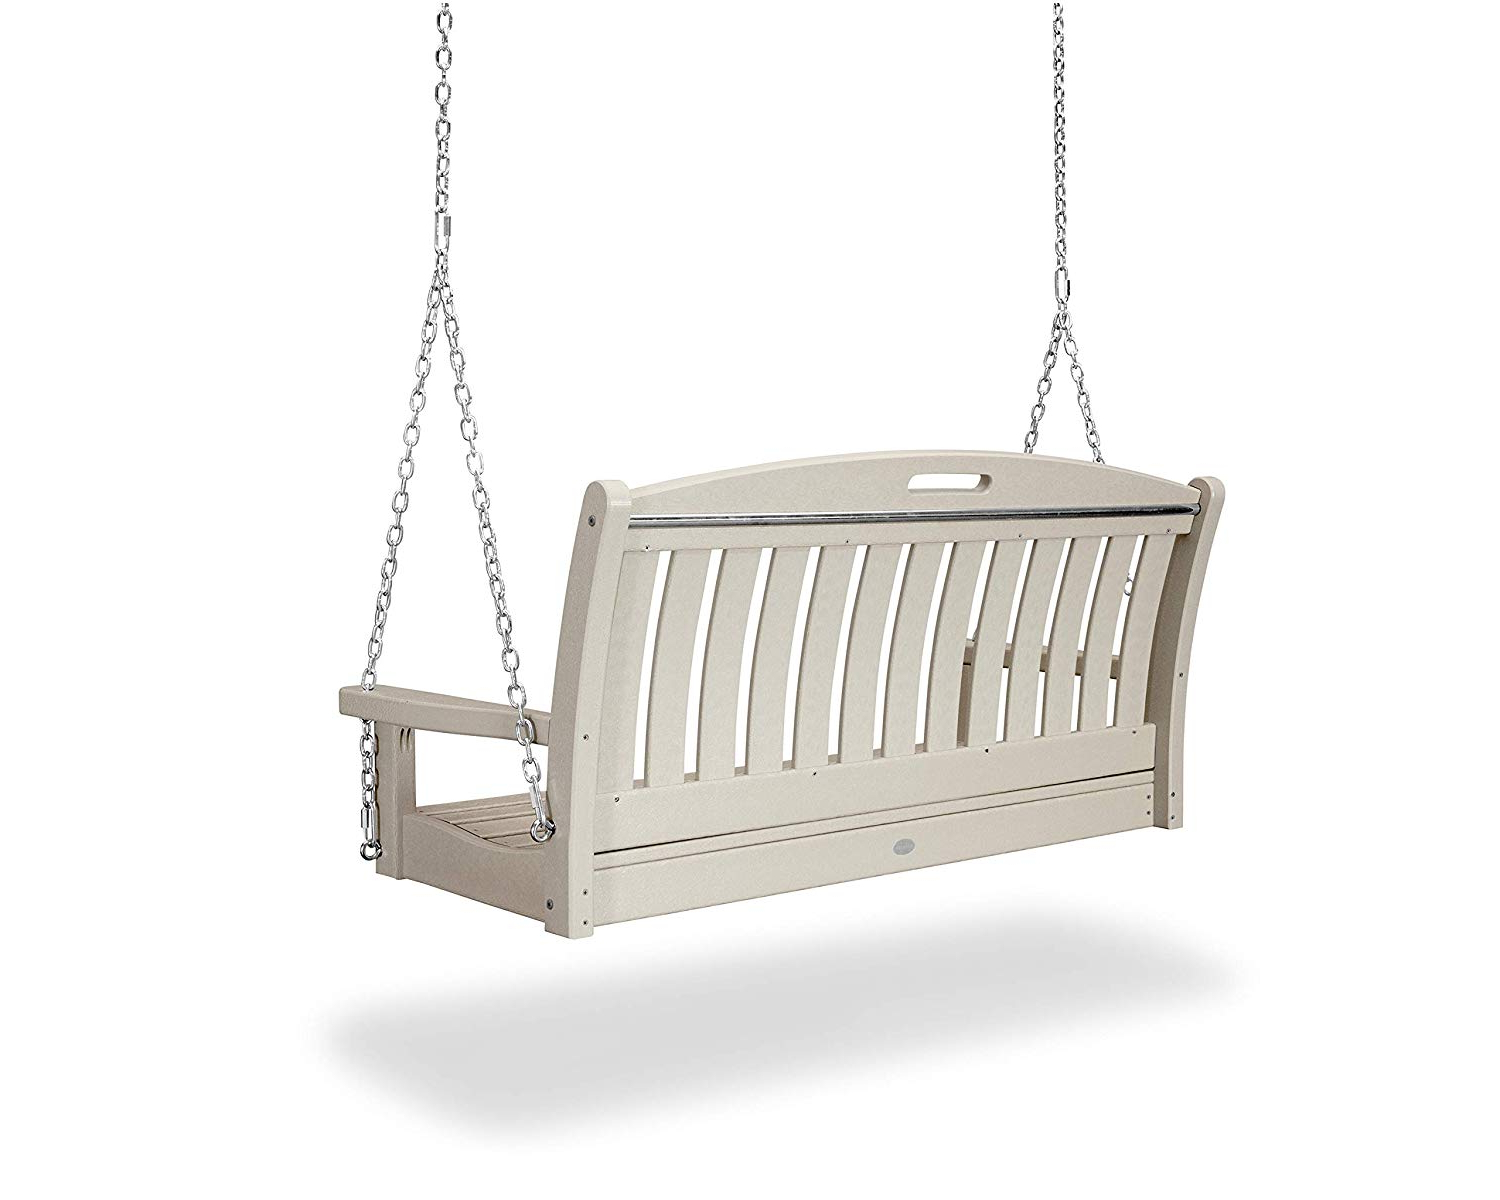 """Polywood Ns48sa Nautical 48"""" Swing, Sand Throughout Preferred Vineyard 2 Person Black Recycled Plastic Outdoor Swings (View 12 of 30)"""